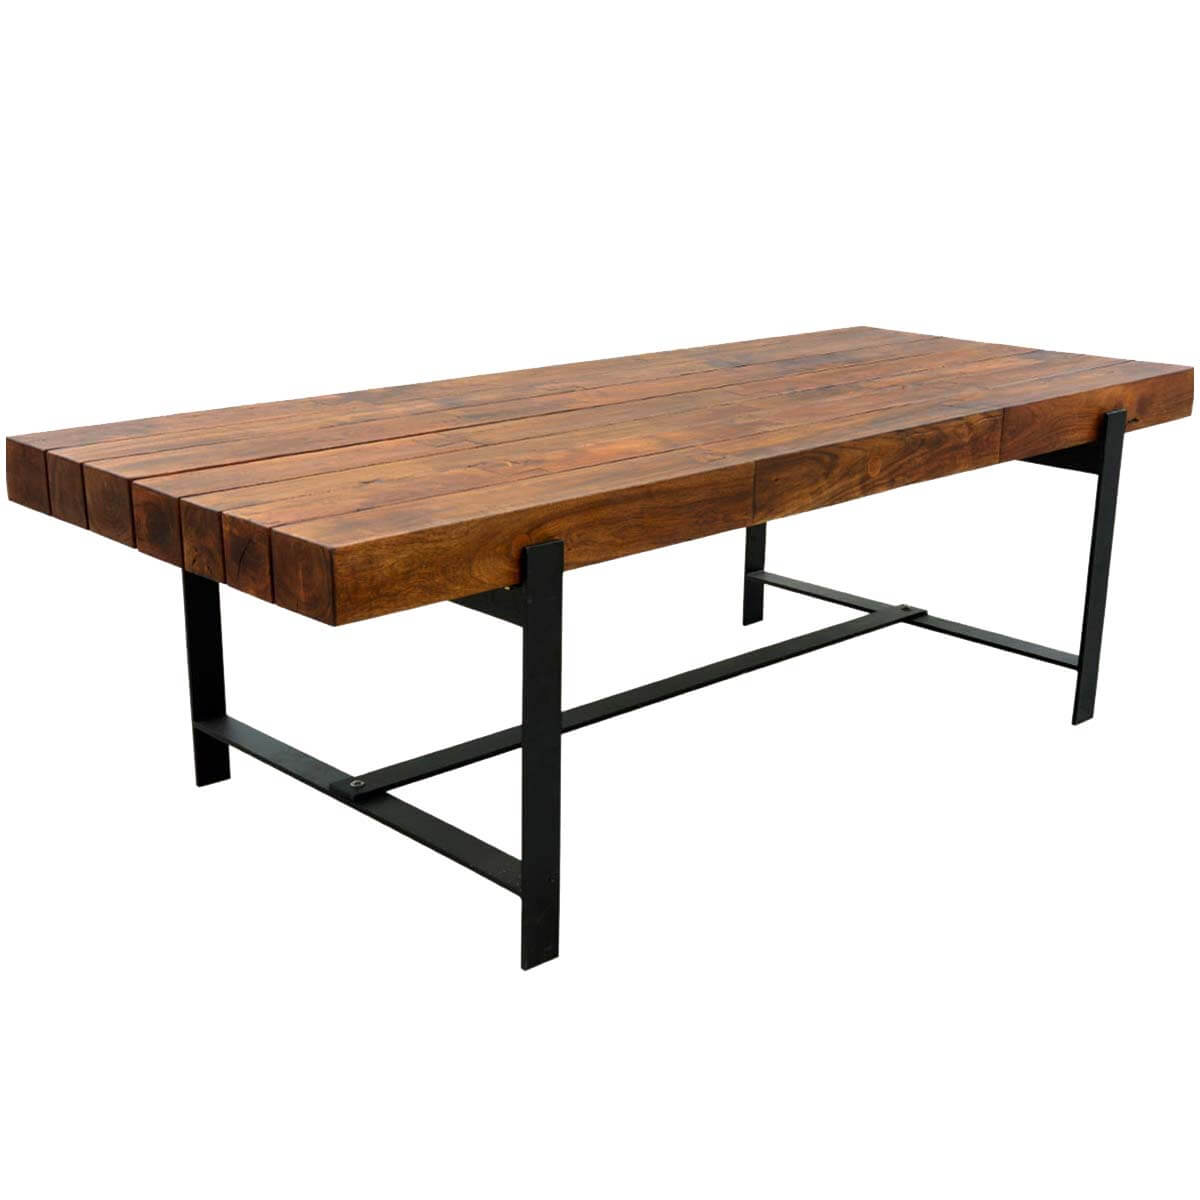 Industrial Iron   Acacia Wood 94. Industrial Iron   Acacia Wood 94  Large Rustic Dining Table